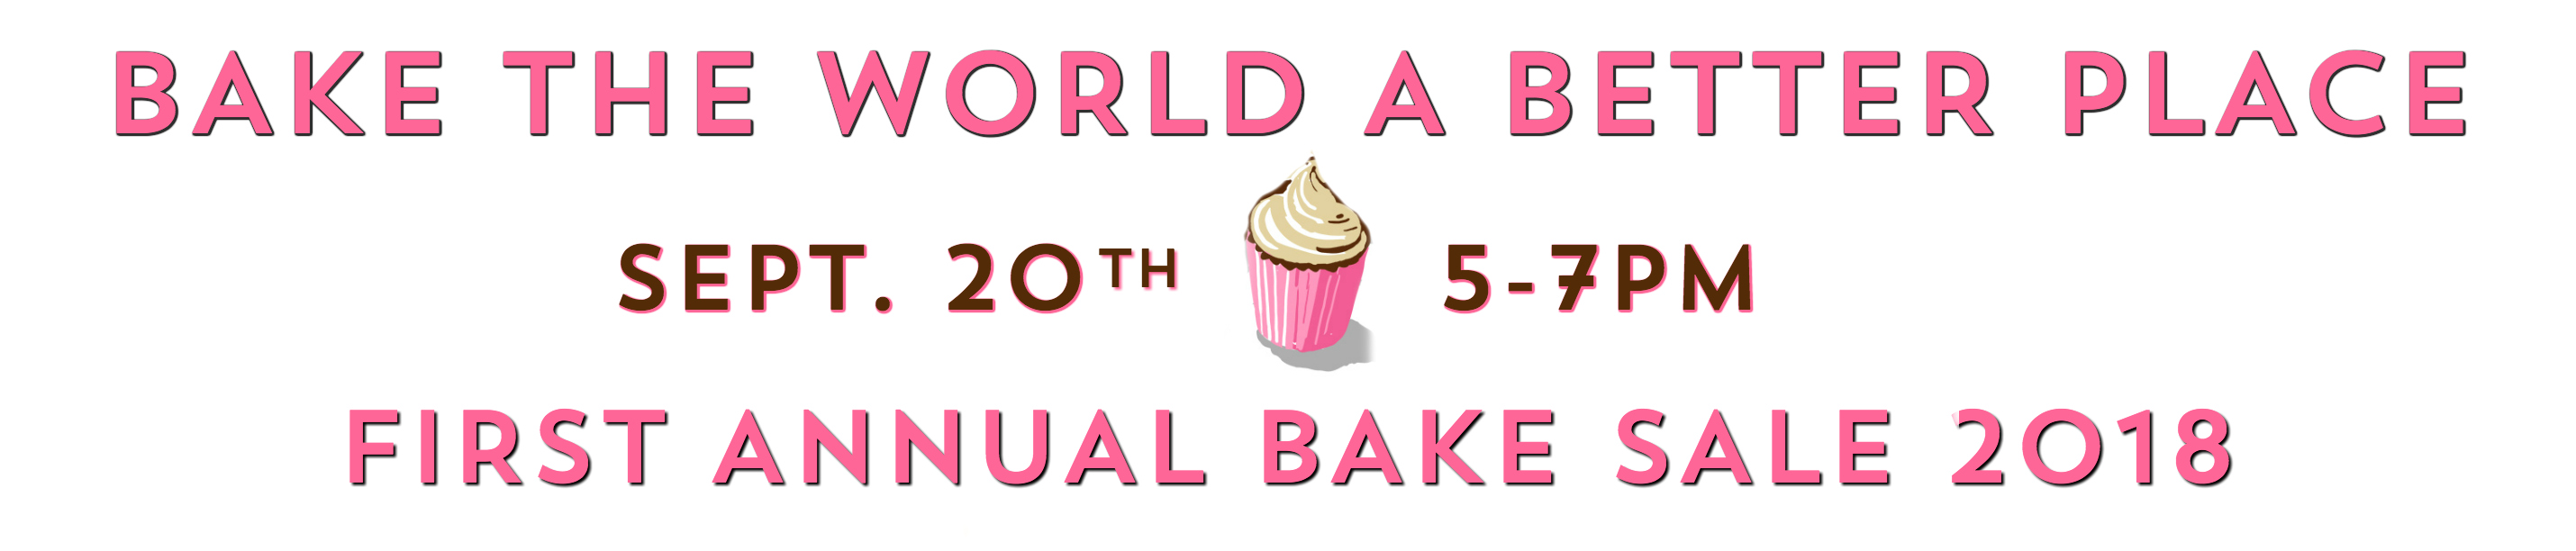 BAKE THE WORLD A BETTER PLACE | SEPT. 20TH 5-7PM | FIRST ANNUAL BAKE SALE 2018